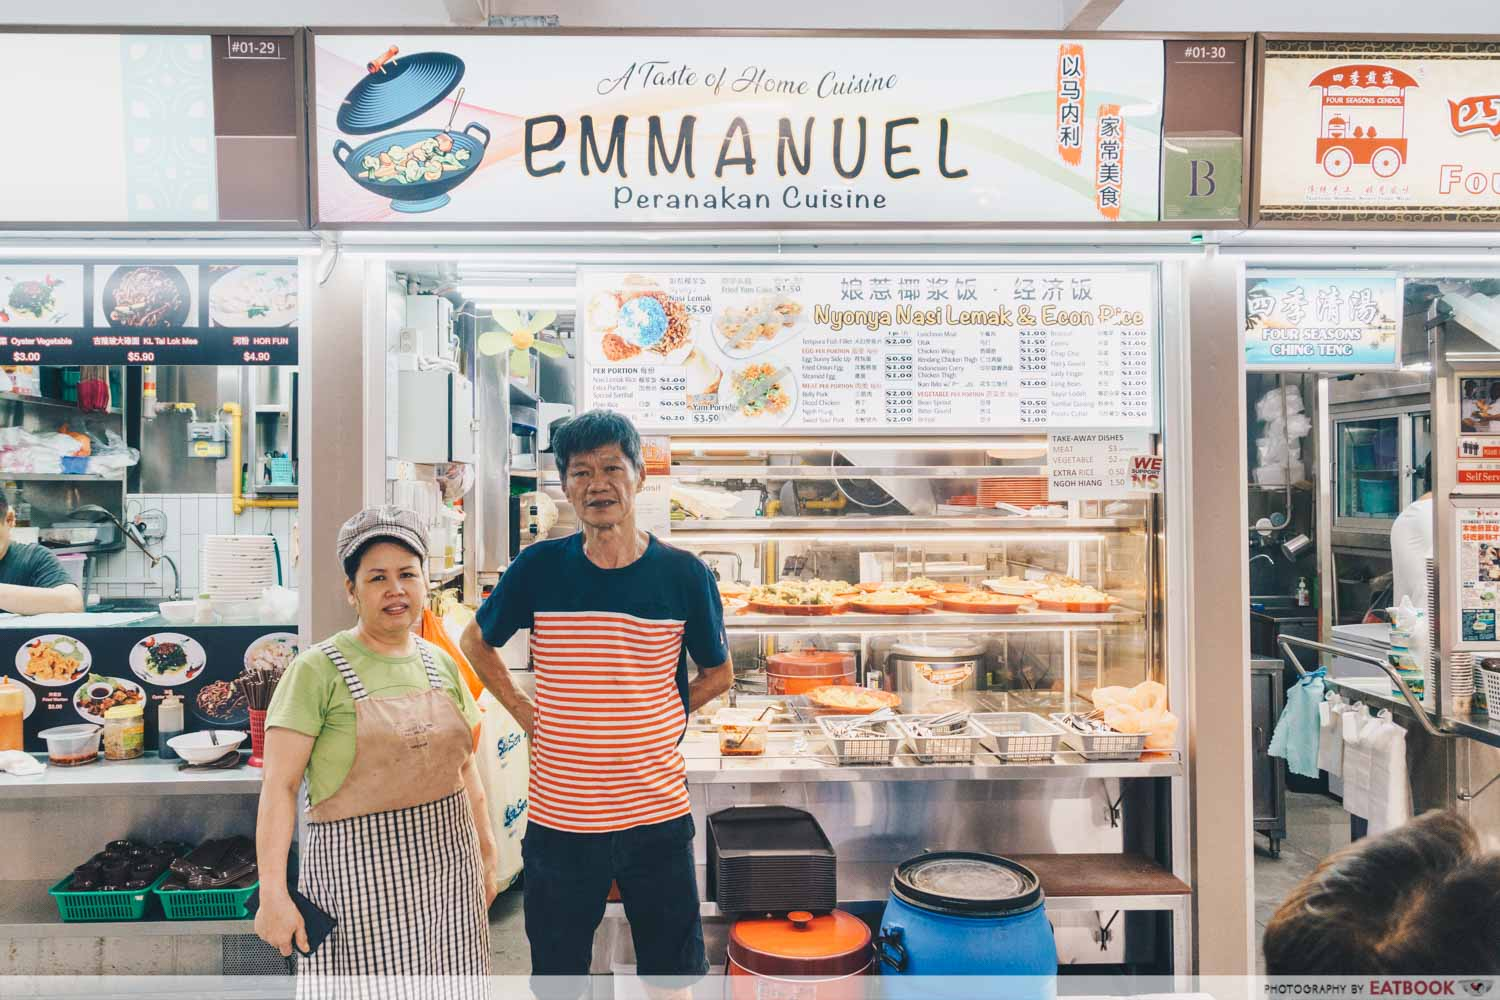 Emmanuel Peranakan Cuisine - Storefront with owners